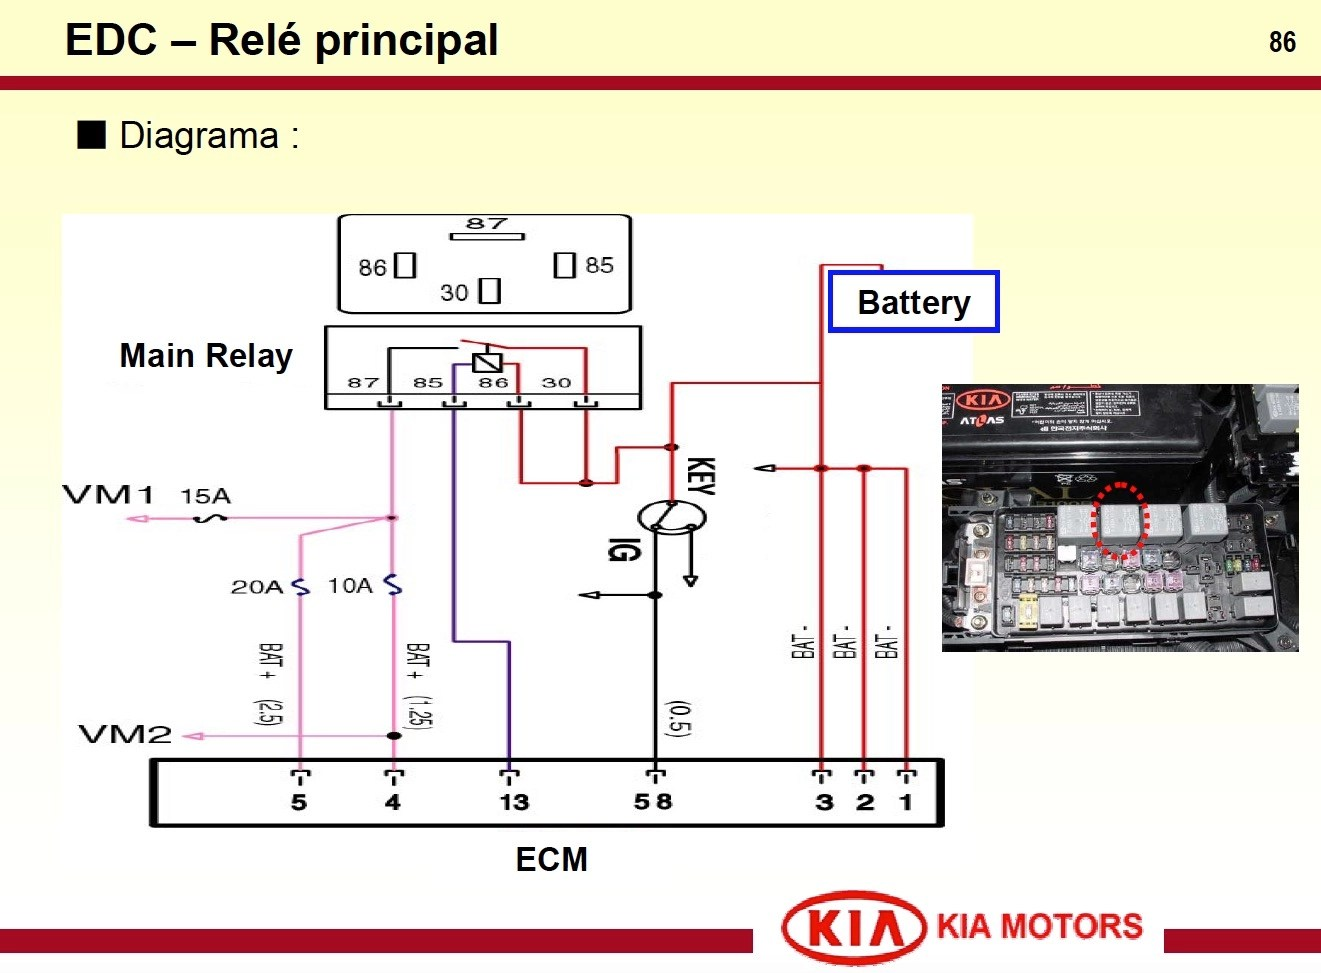 7 wire cdi box wiring diagram corn anatomy help!! main relay buzzing - kia forum